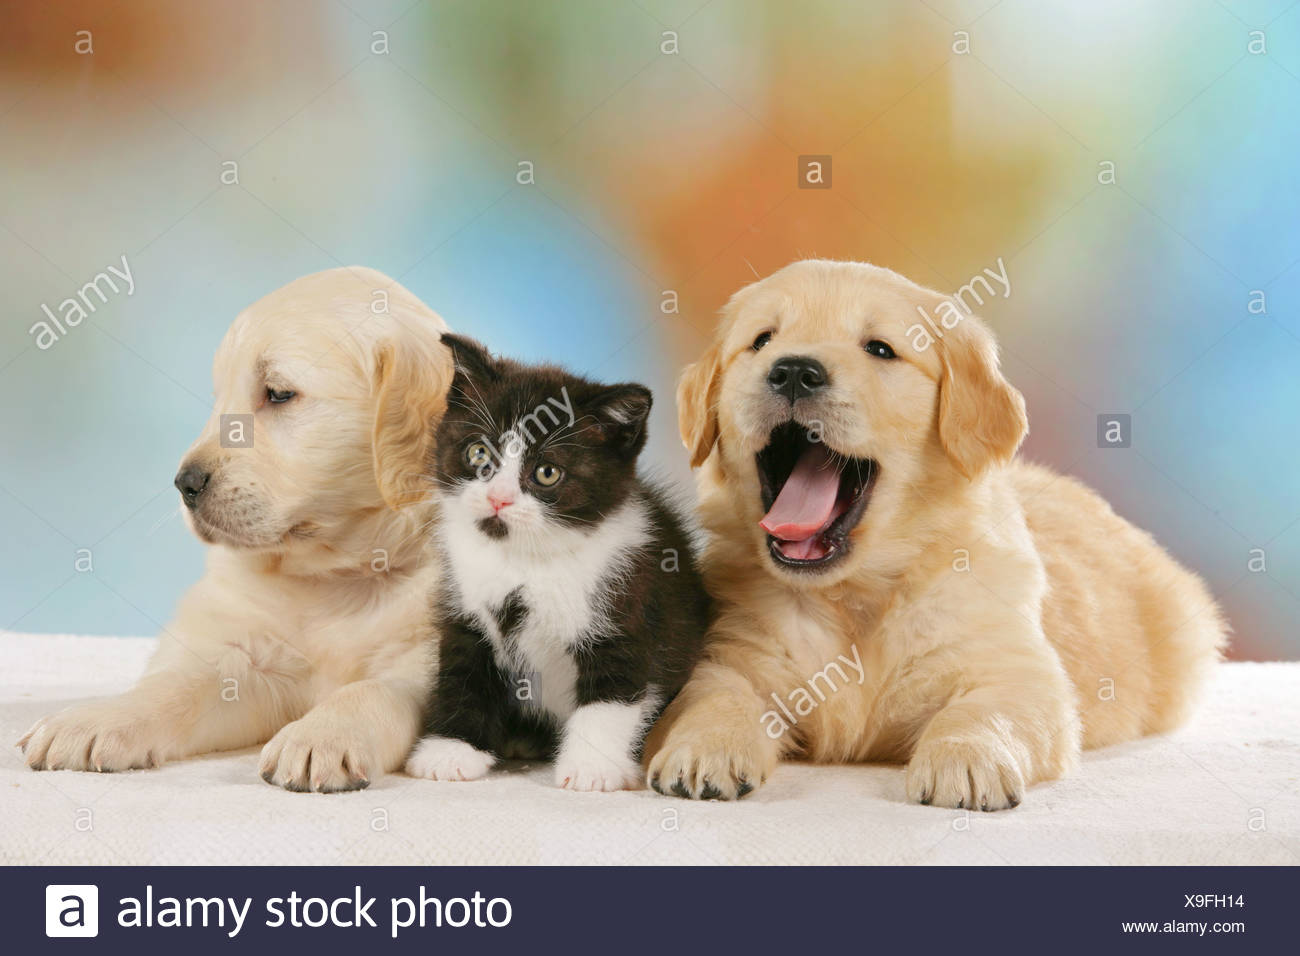 Yawning Golden Retriever Stock Photos Yawning Golden Retriever